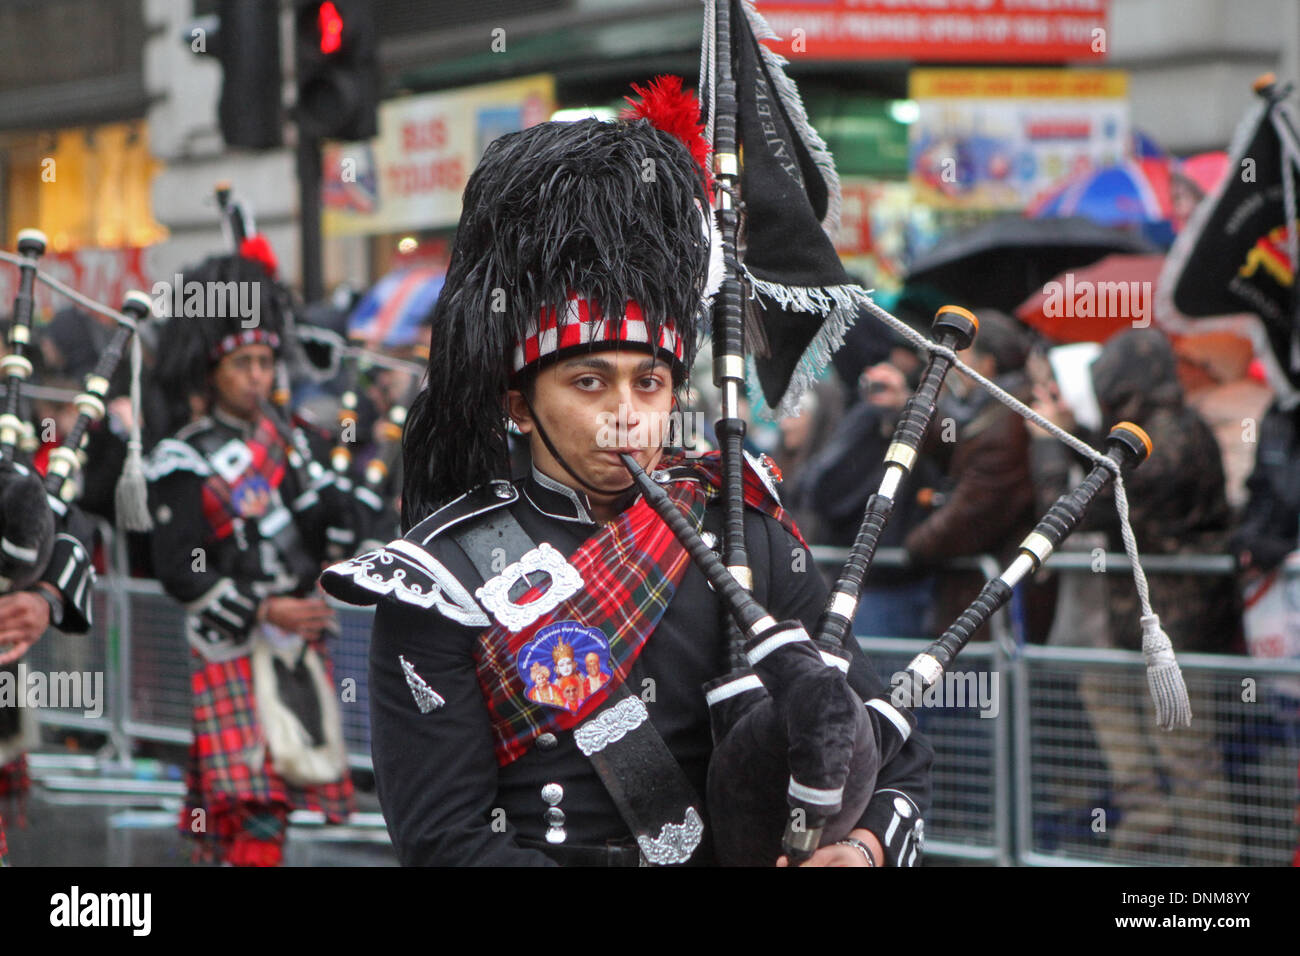 London,UK,1st January 2014,Highland Pipers at the London's New Year's Day Parade 2014 Credit: Keith Larby/Alamy Live News - Stock Image